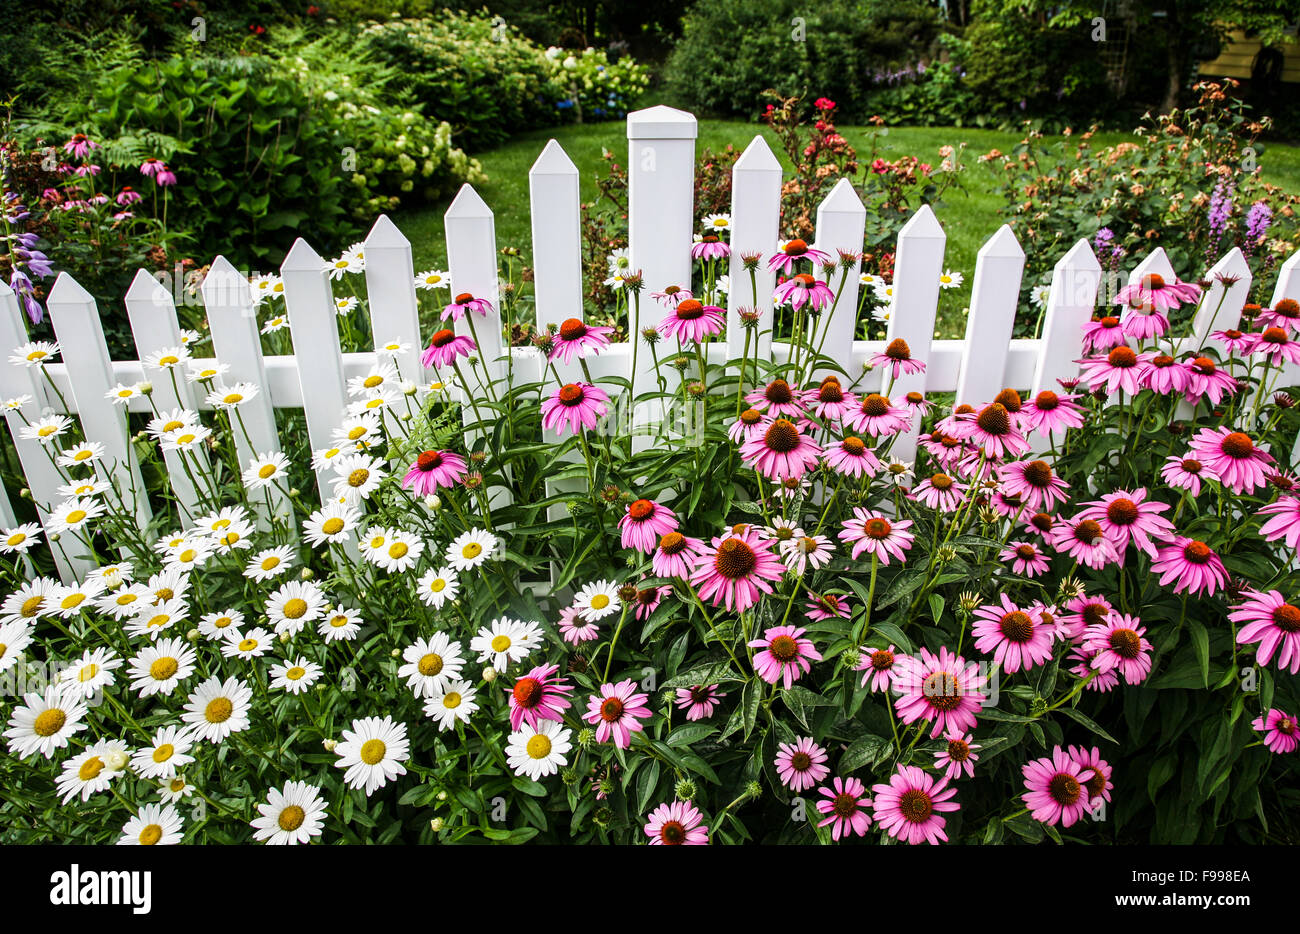 English Garden Border With Purple Cone Flowers, Daisies Along A White  Picket Fence, New Jersey, USA